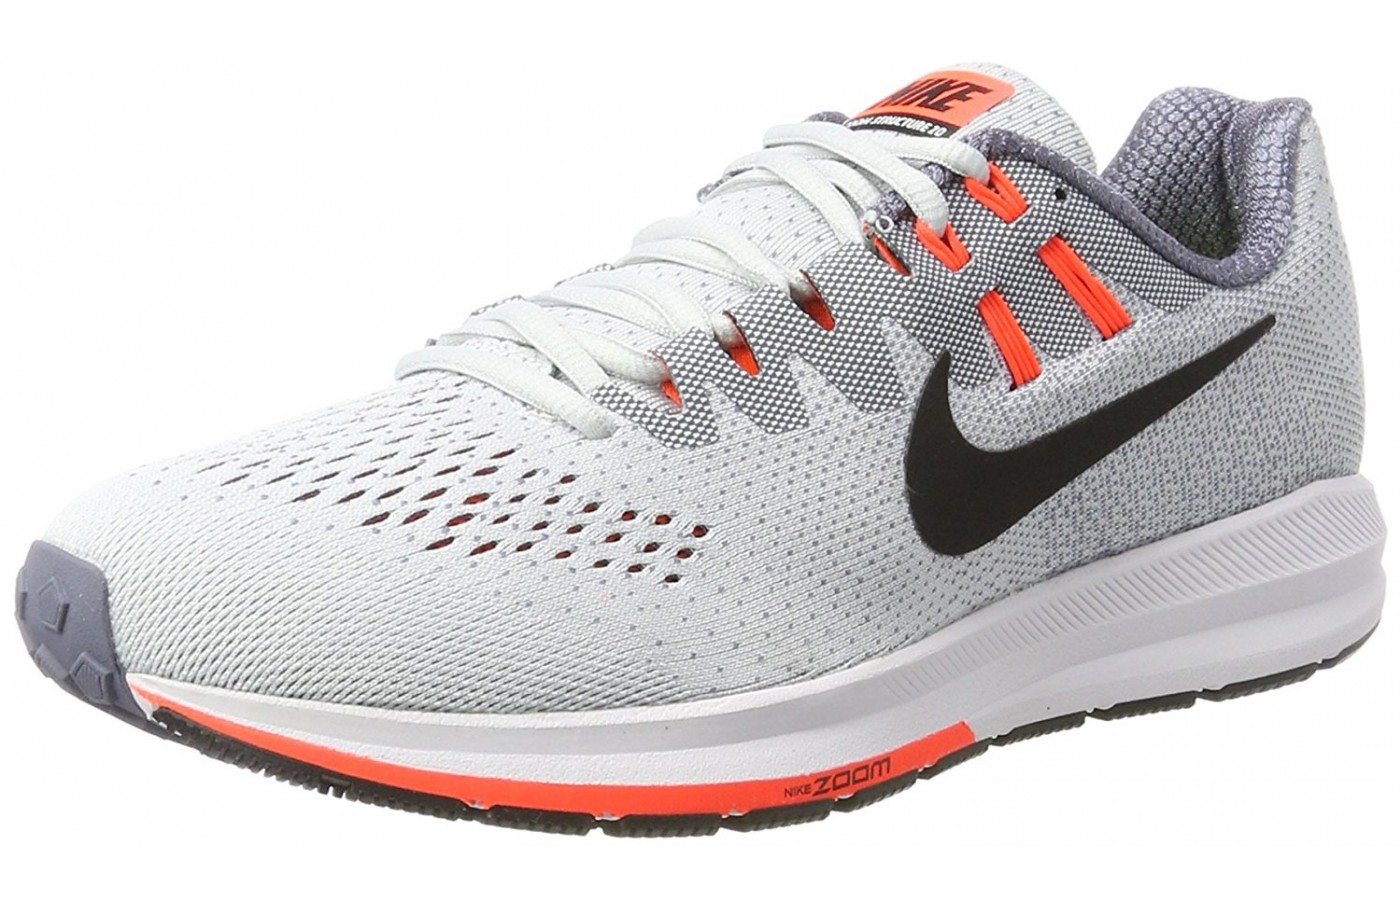 The Nike Air Zoom Structure 20 running shoe ...